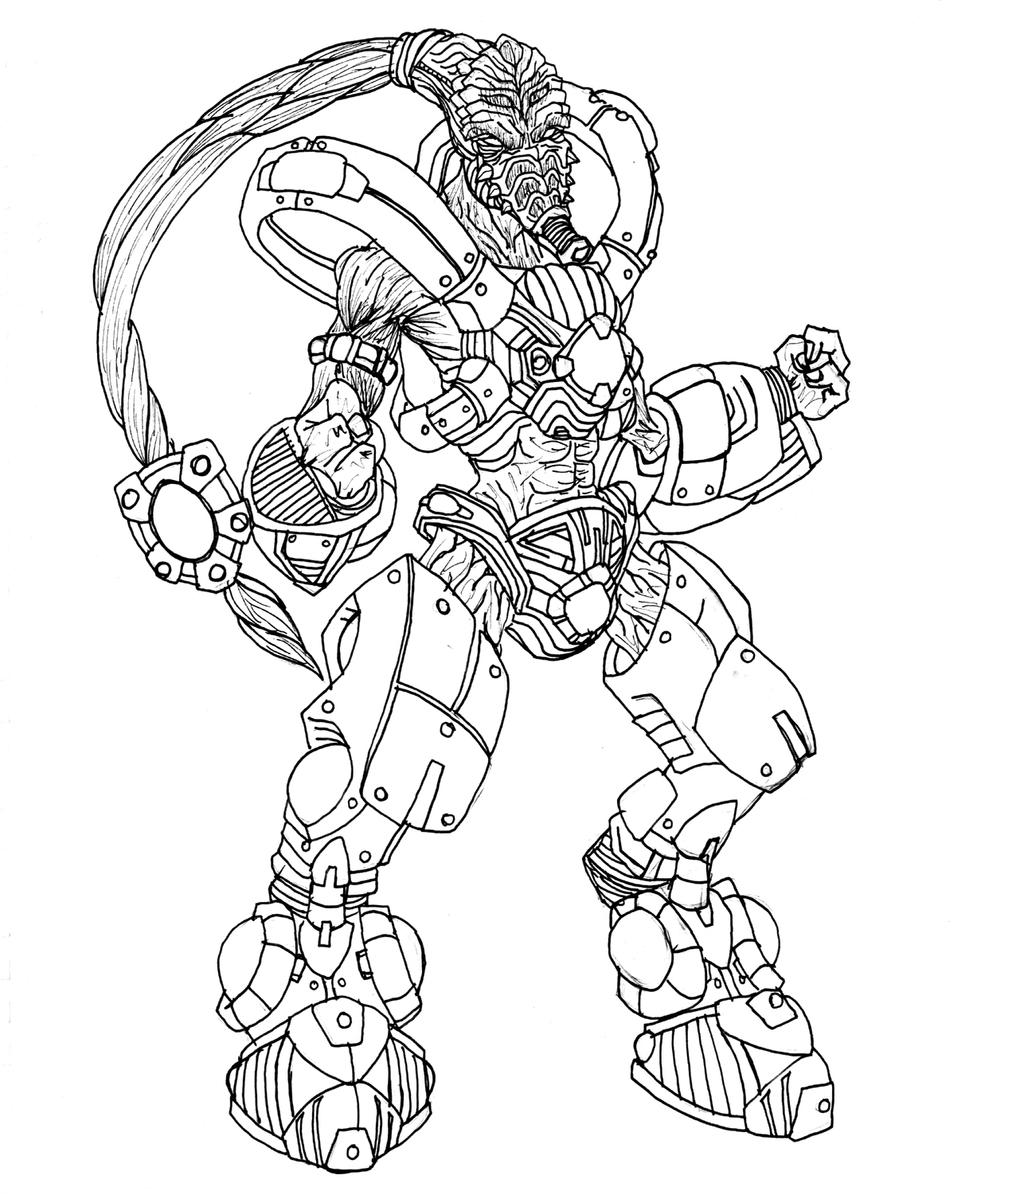 starcraft coloring pages - protoss zealot by kerberos of hades on deviantart